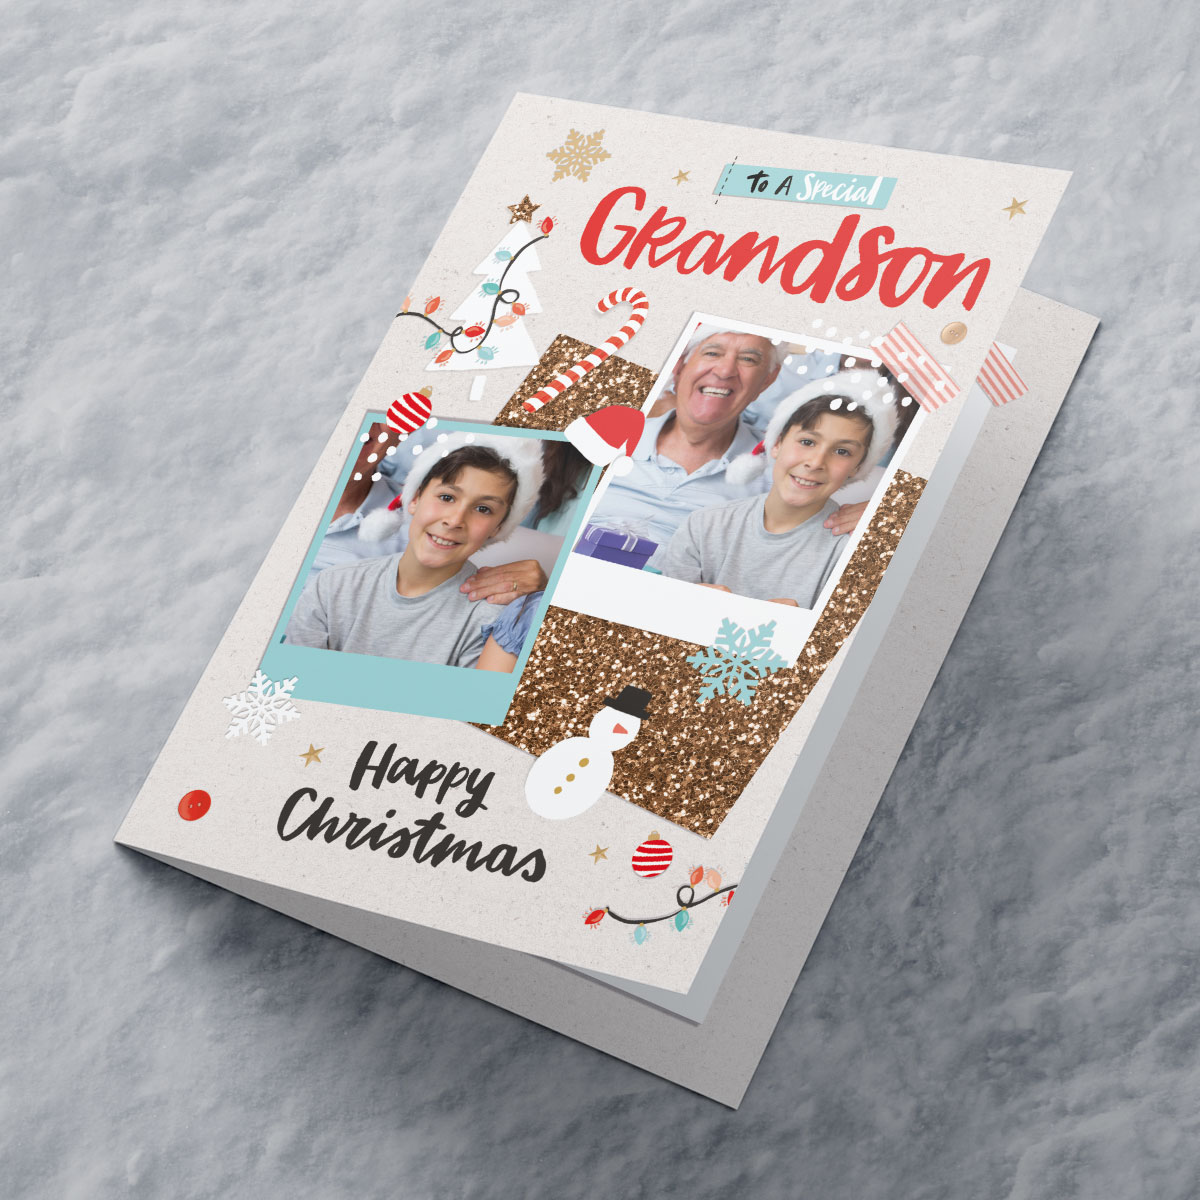 Multi Photo Upload Christmas Card - Special Grandson